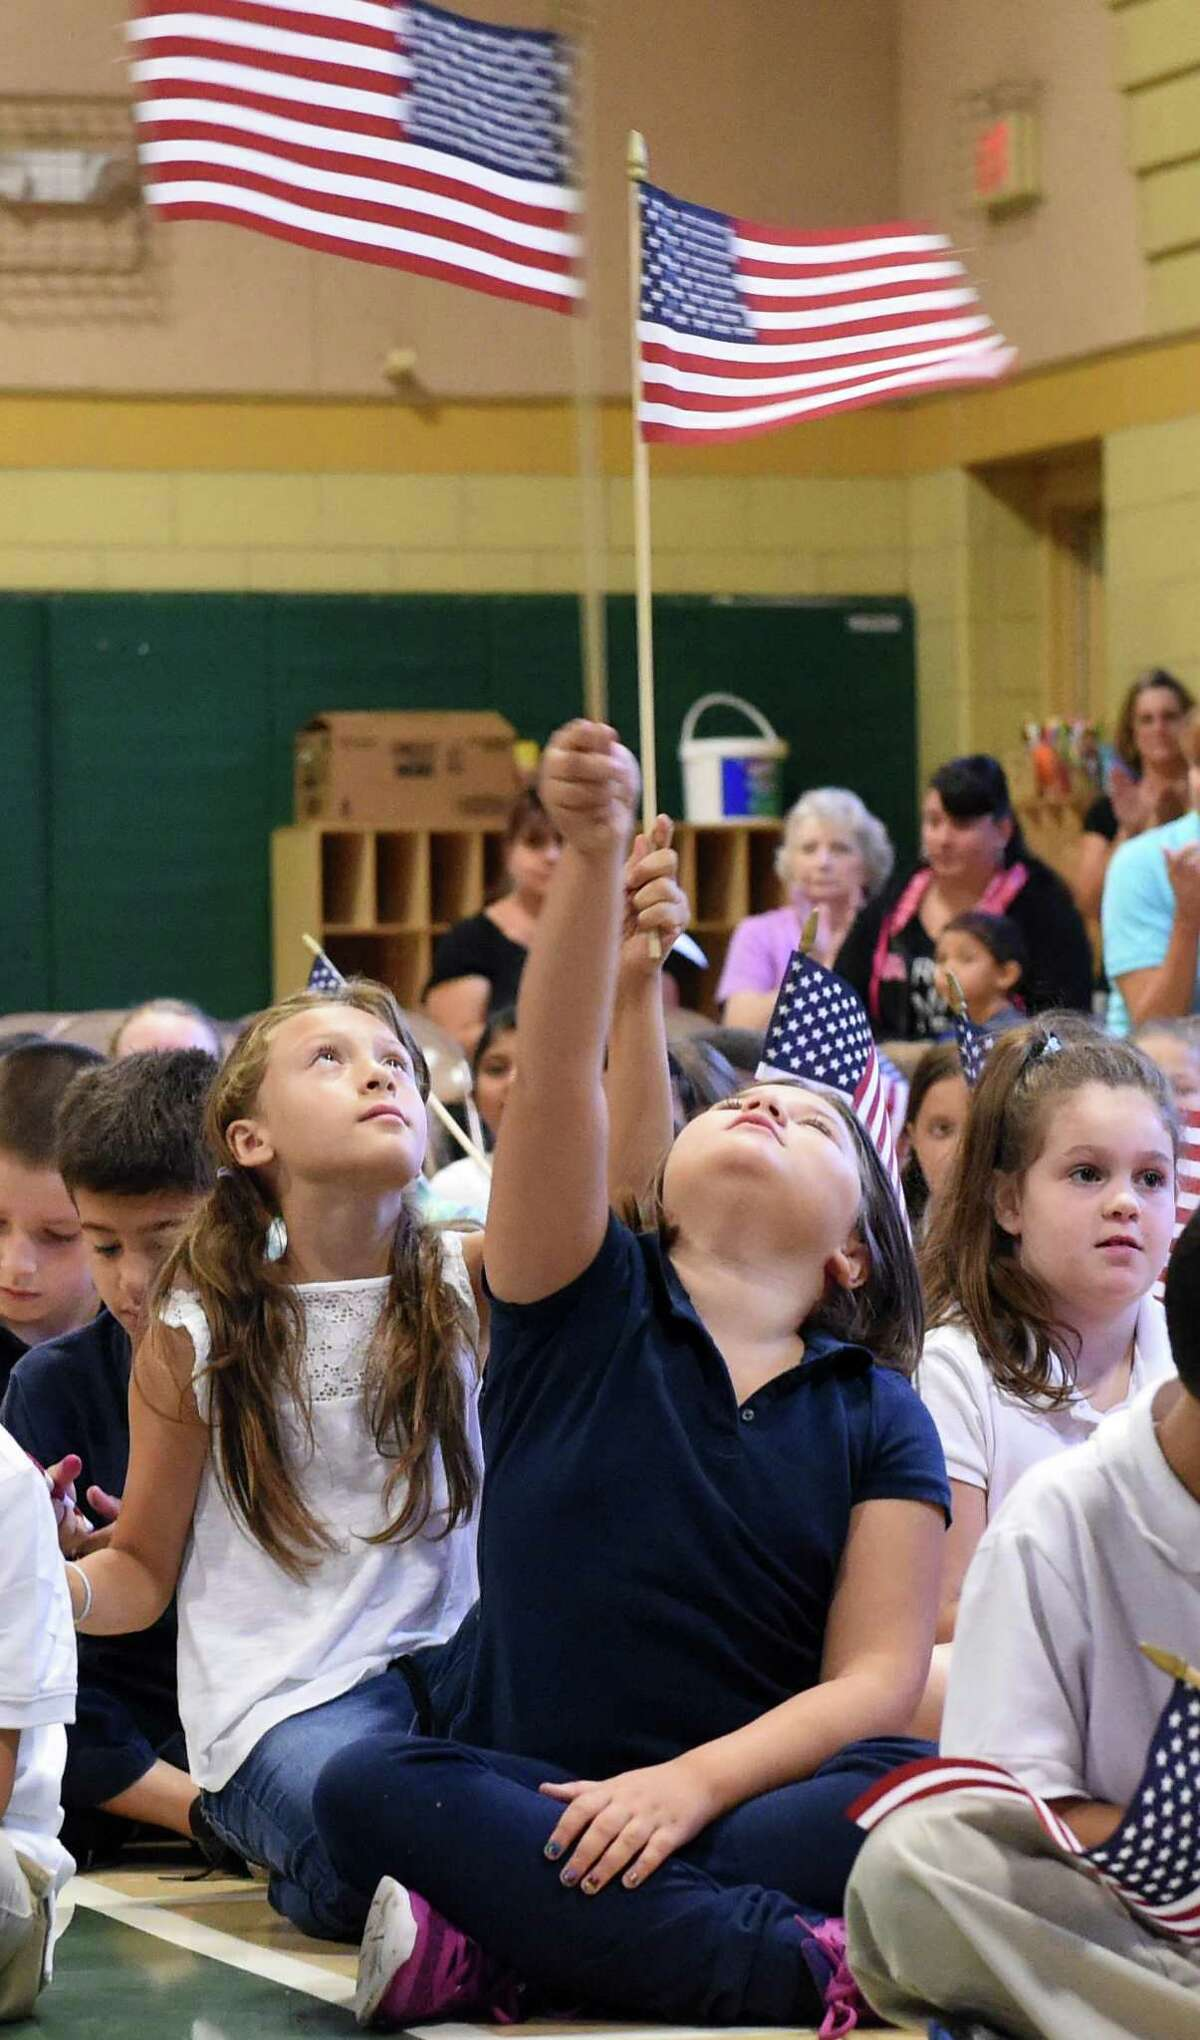 (Peter Hvizdak - New Haven Register) Two elementary school students raise the U.S. flag high during a during a We Love America Day school assembly honoring the memory of the heroes of the 9/11 in the gym at the Grove J. Tuttle Elementary School in East Haven, Connecticut Friday, September 11, 2015 marking the anniversary of the 9/11 attacks on the United States in 2001.